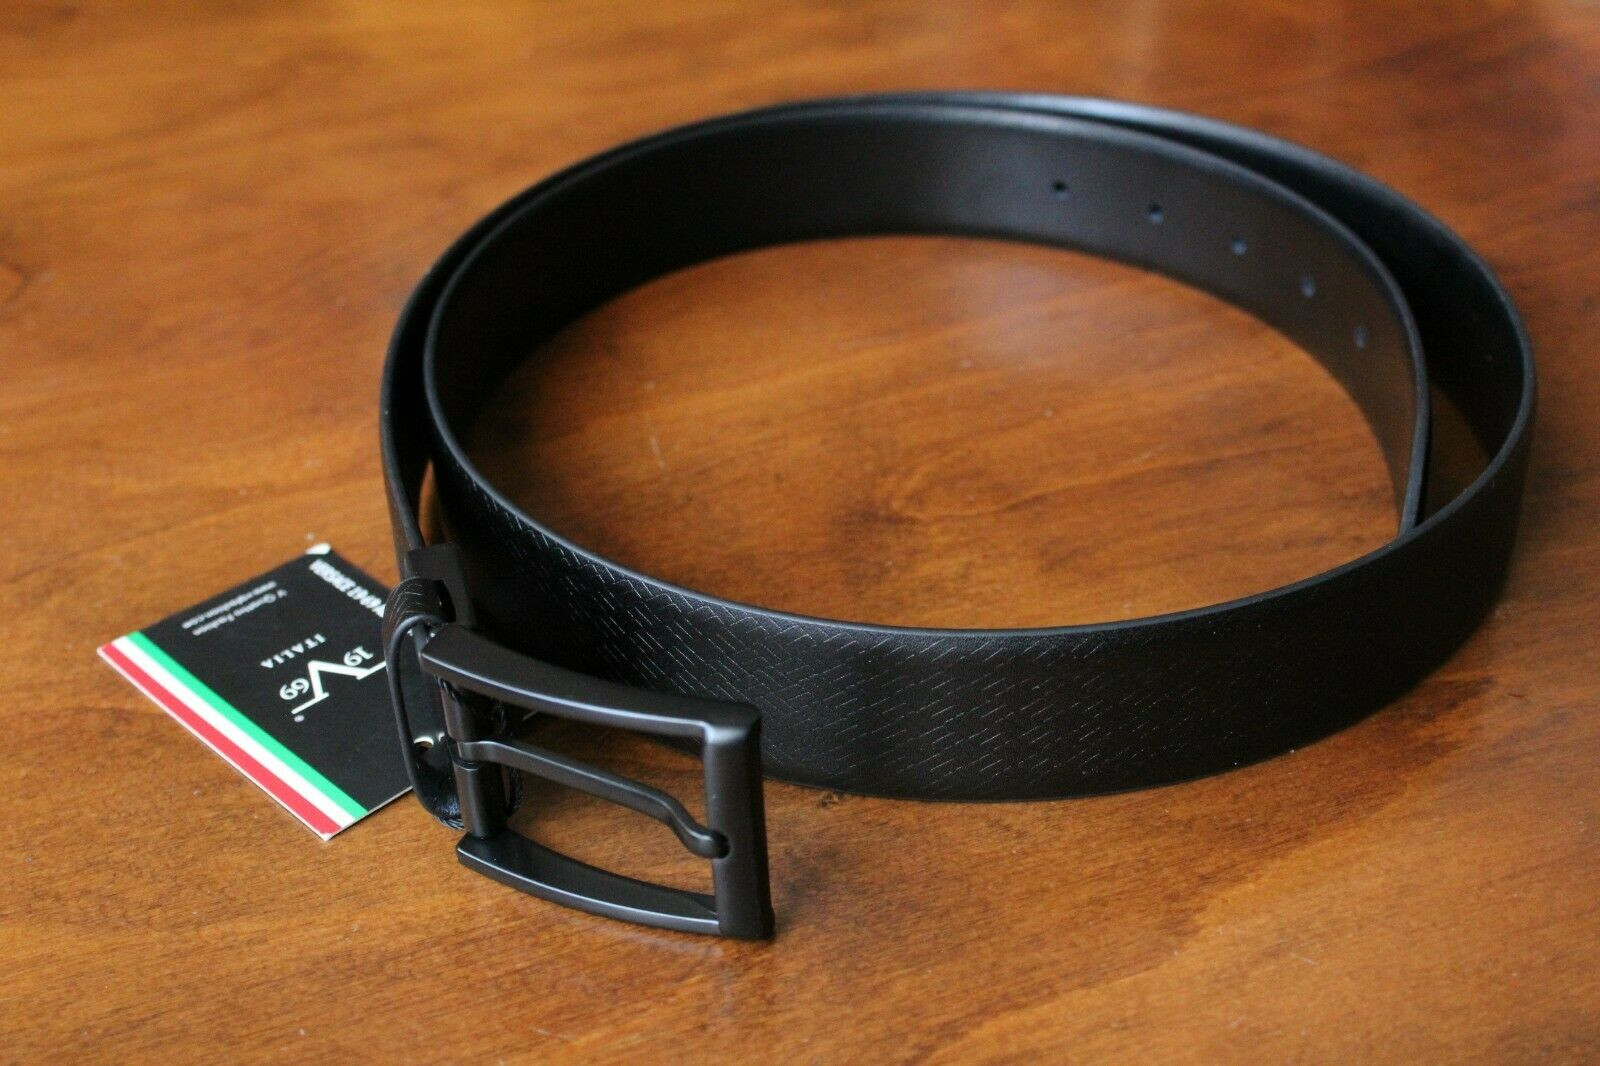 VERSACE 19.69 Men's 100% Leather Black Belt 47.2 inches Free Shipping New w tags